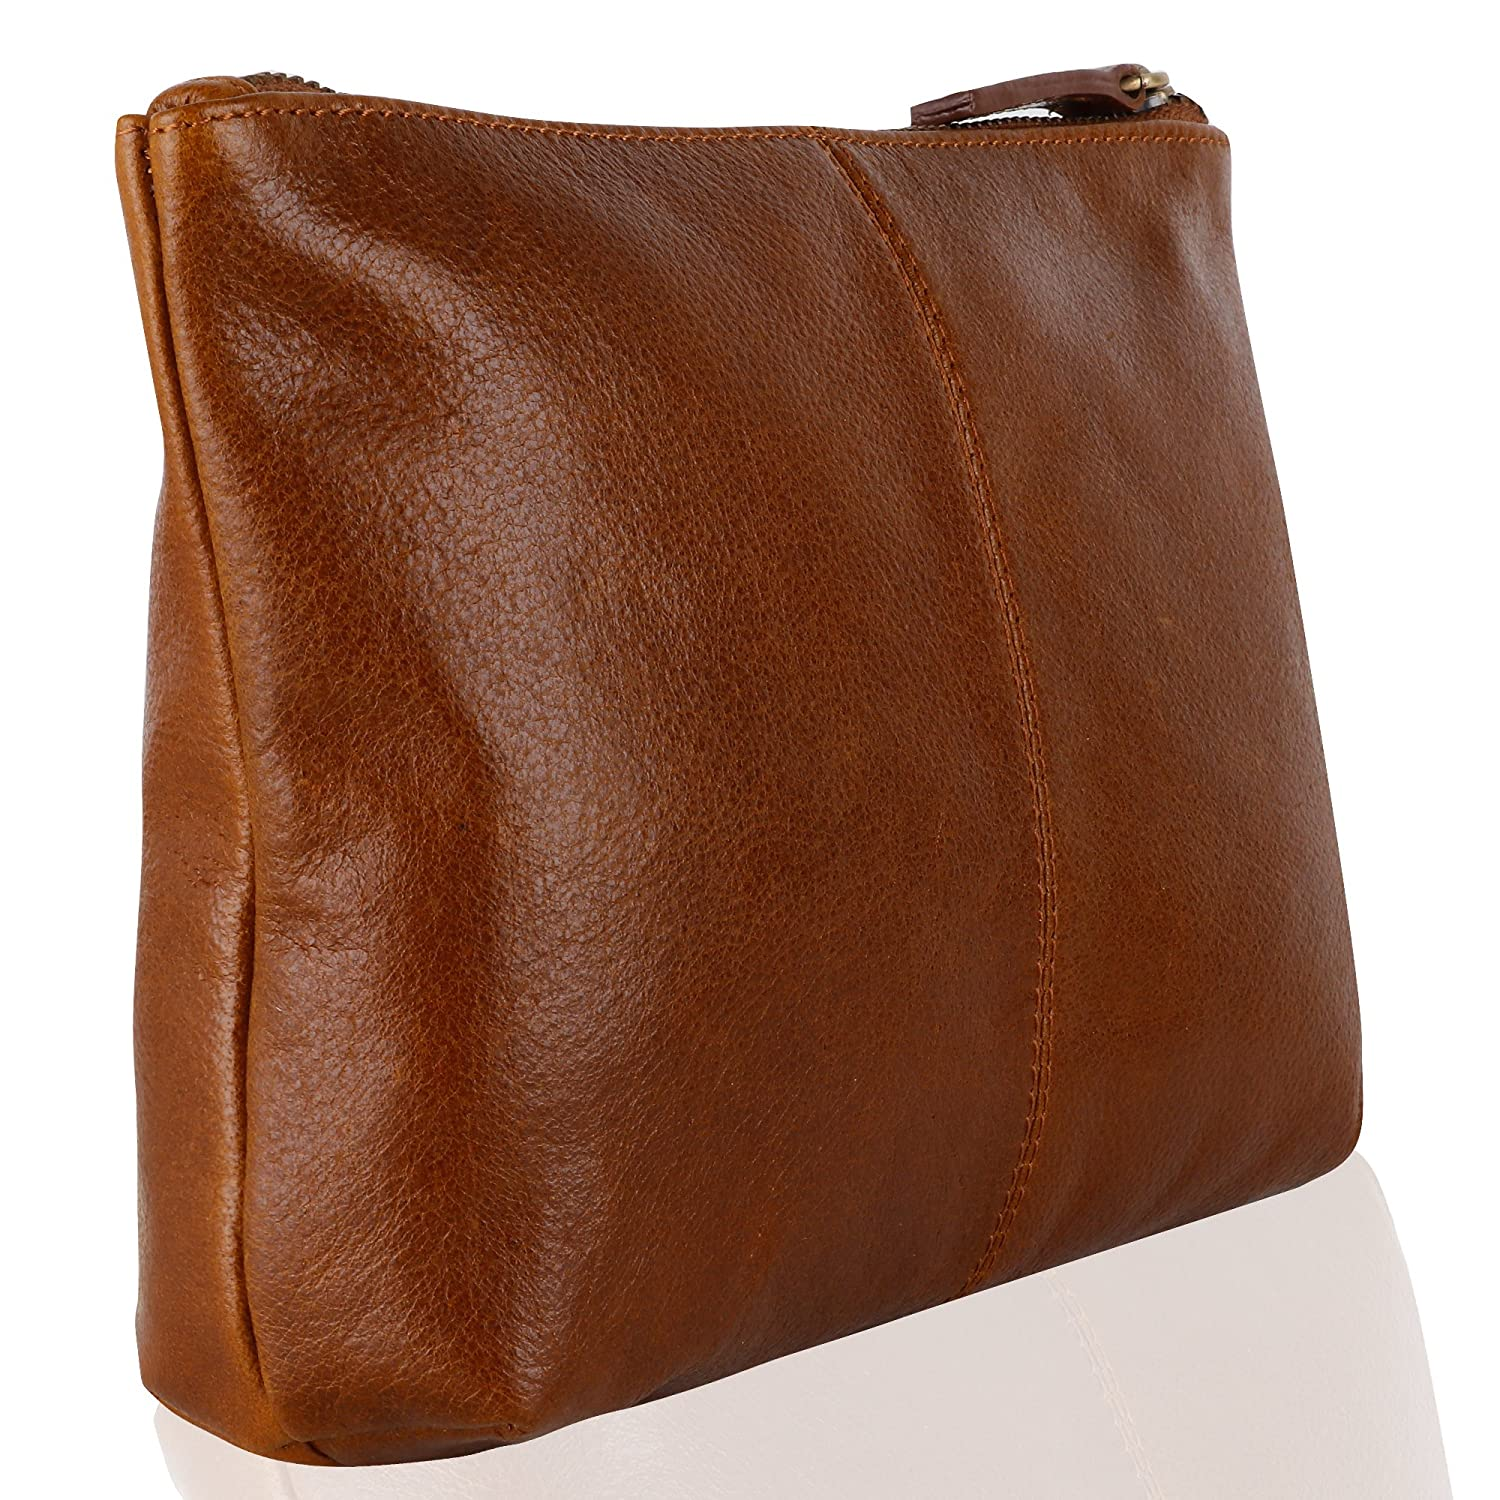 Genuine Leather Cosmetic Bag Toiletry Bag, Make Up pouch (Cognac) SD 018